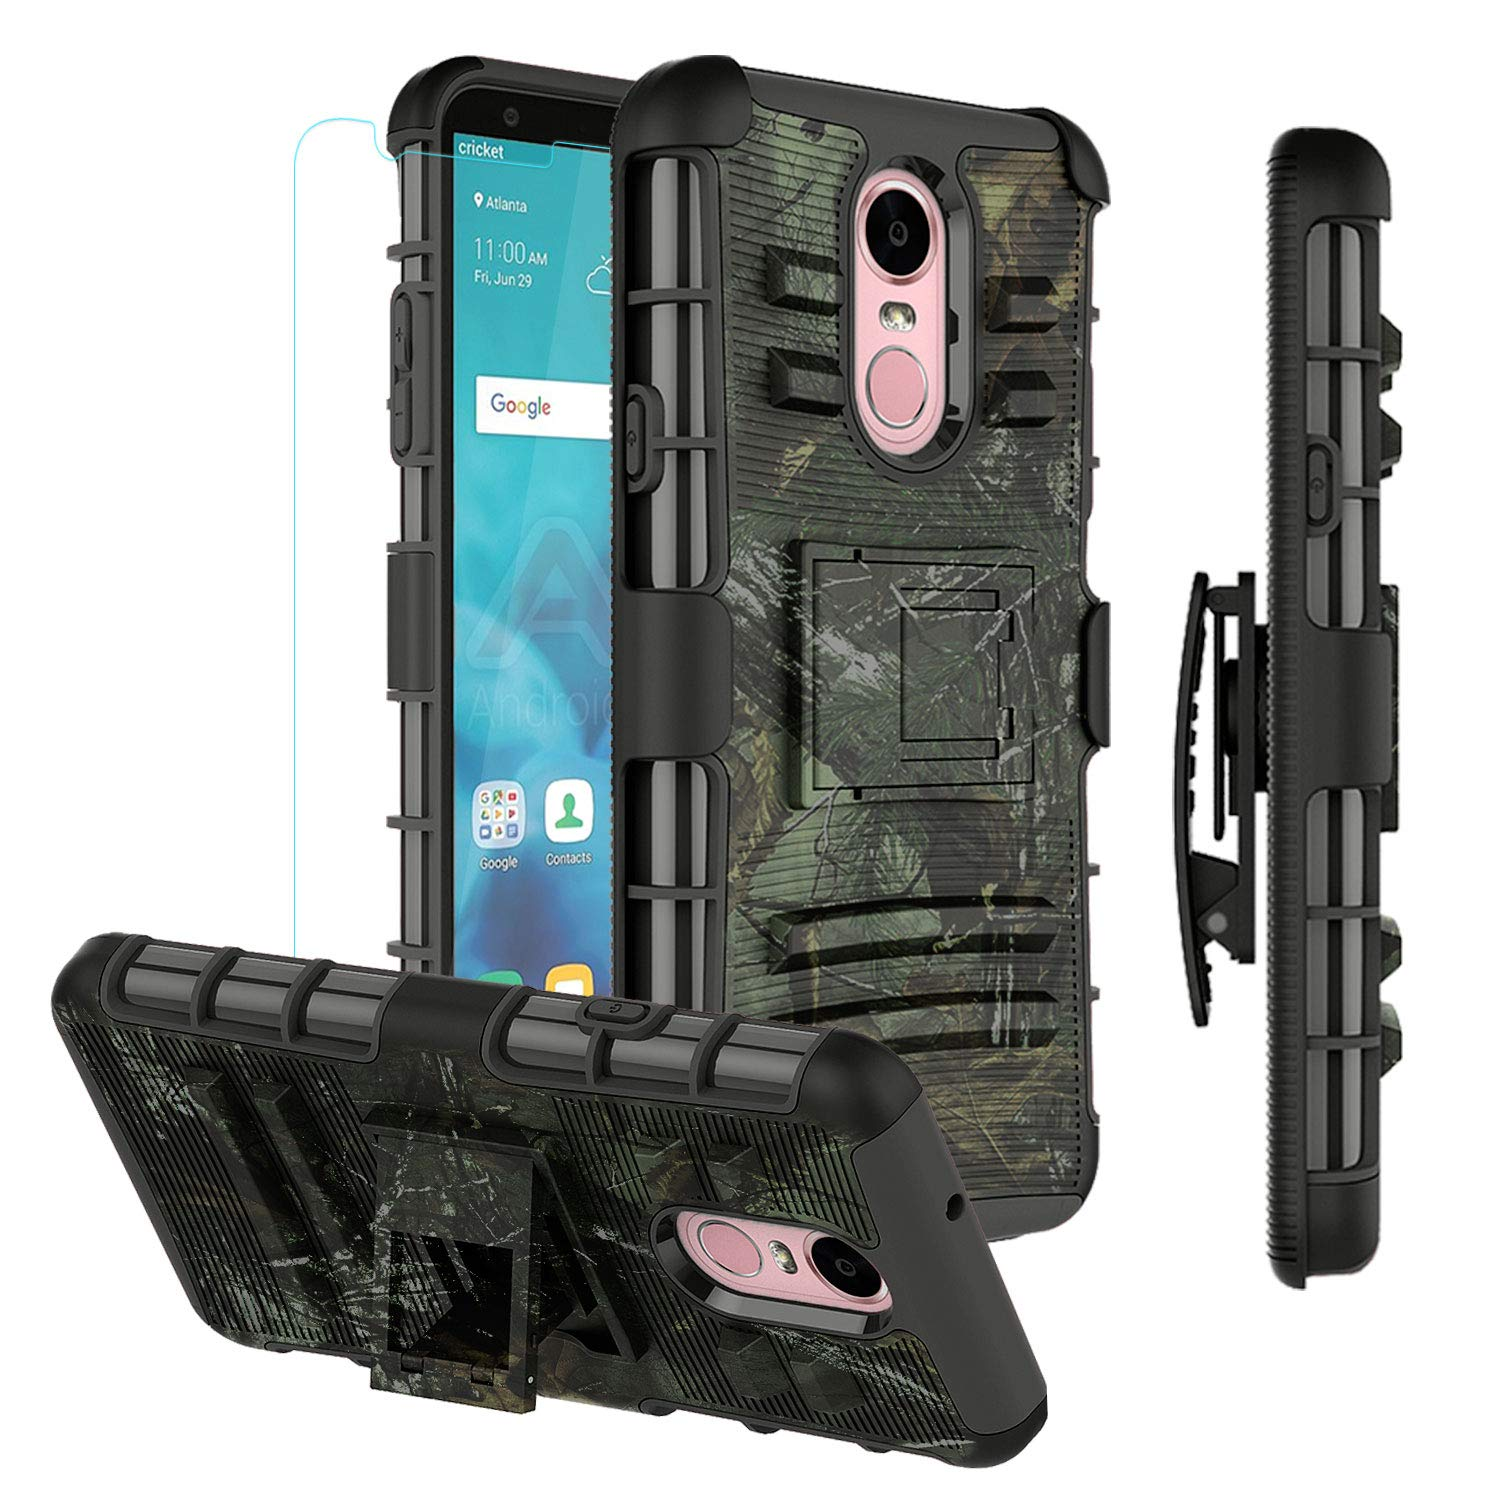 LG Stylo 4 Case Heavy Duty,LG Stylo 4 Plus Shockproof Protective Case with Belt Clip with Tempered Glass Screen Protector,Camo